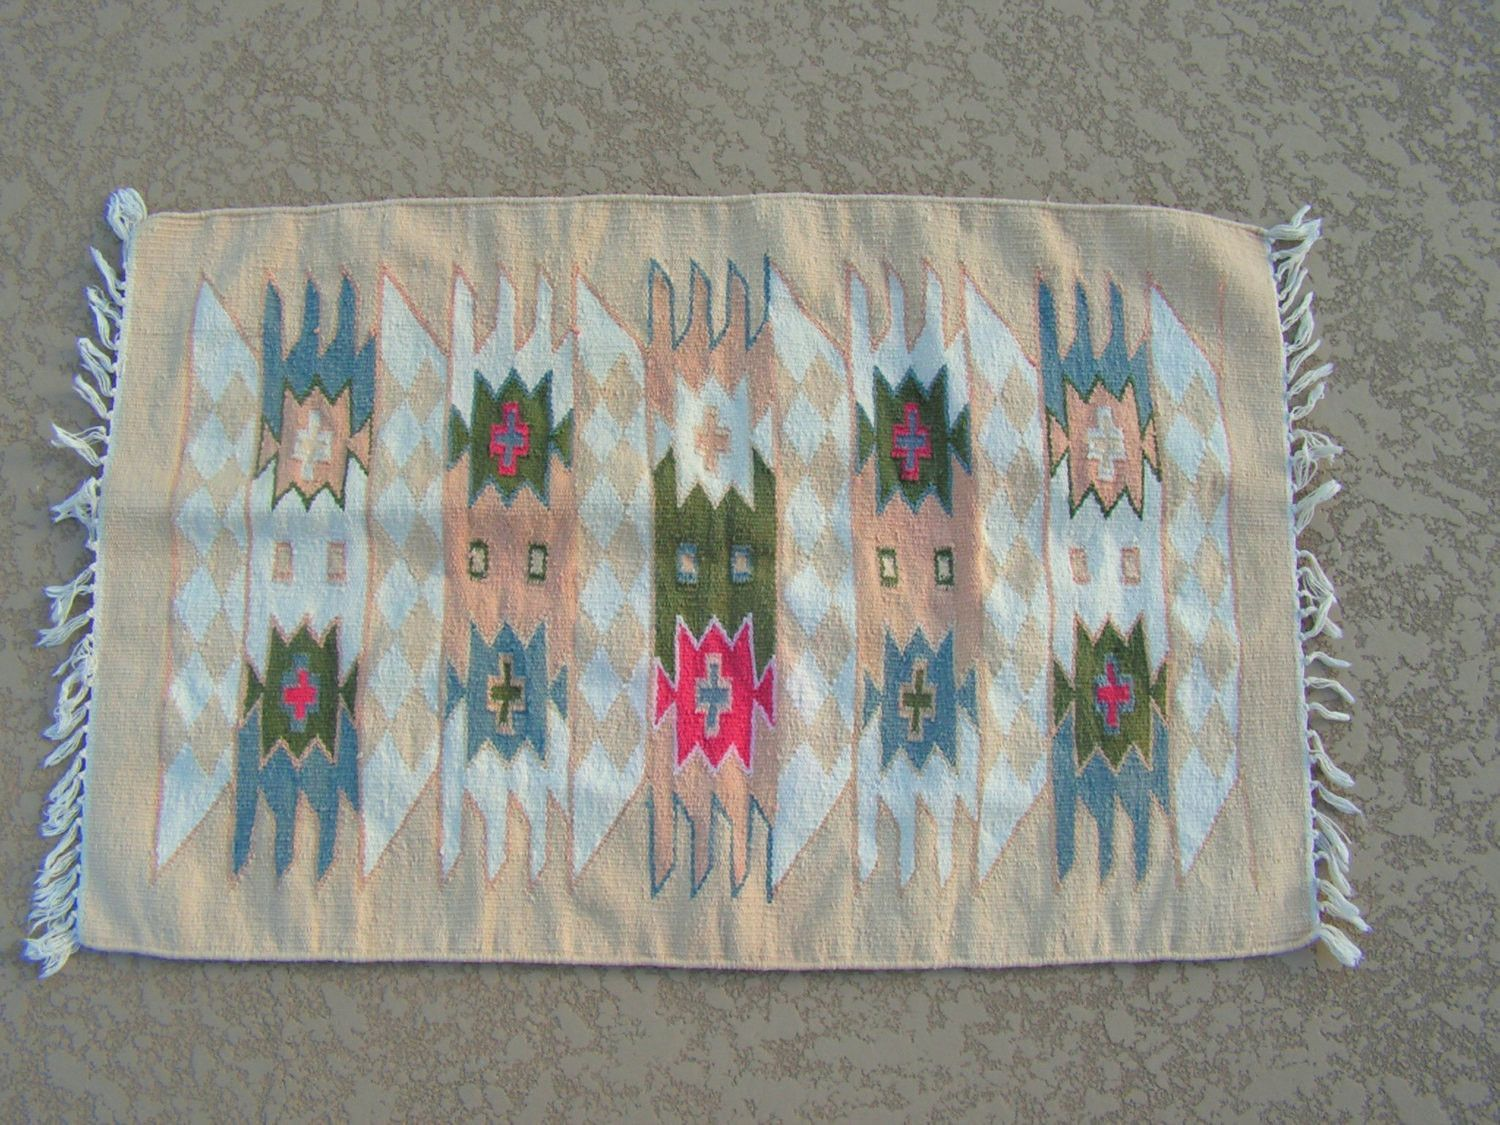 Mexican Woven Chimayo Blanket Rug Southwestern 36 x 23 Rug Ethnic Tribal Weaving Decor